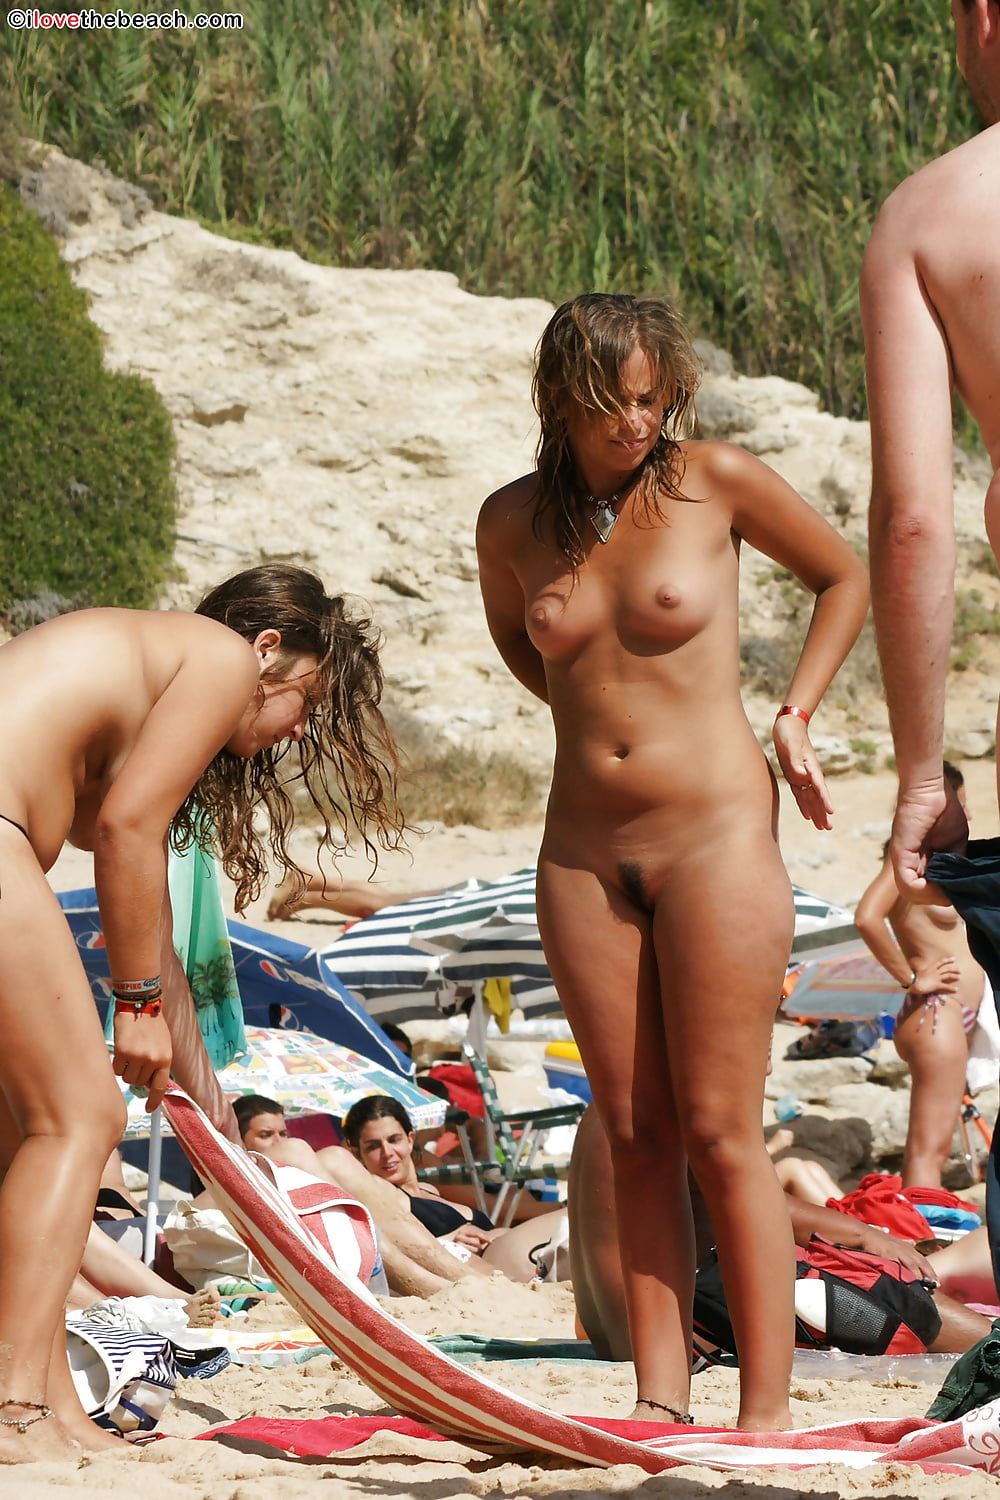 Warm Adults Onlynude Beaches Gif